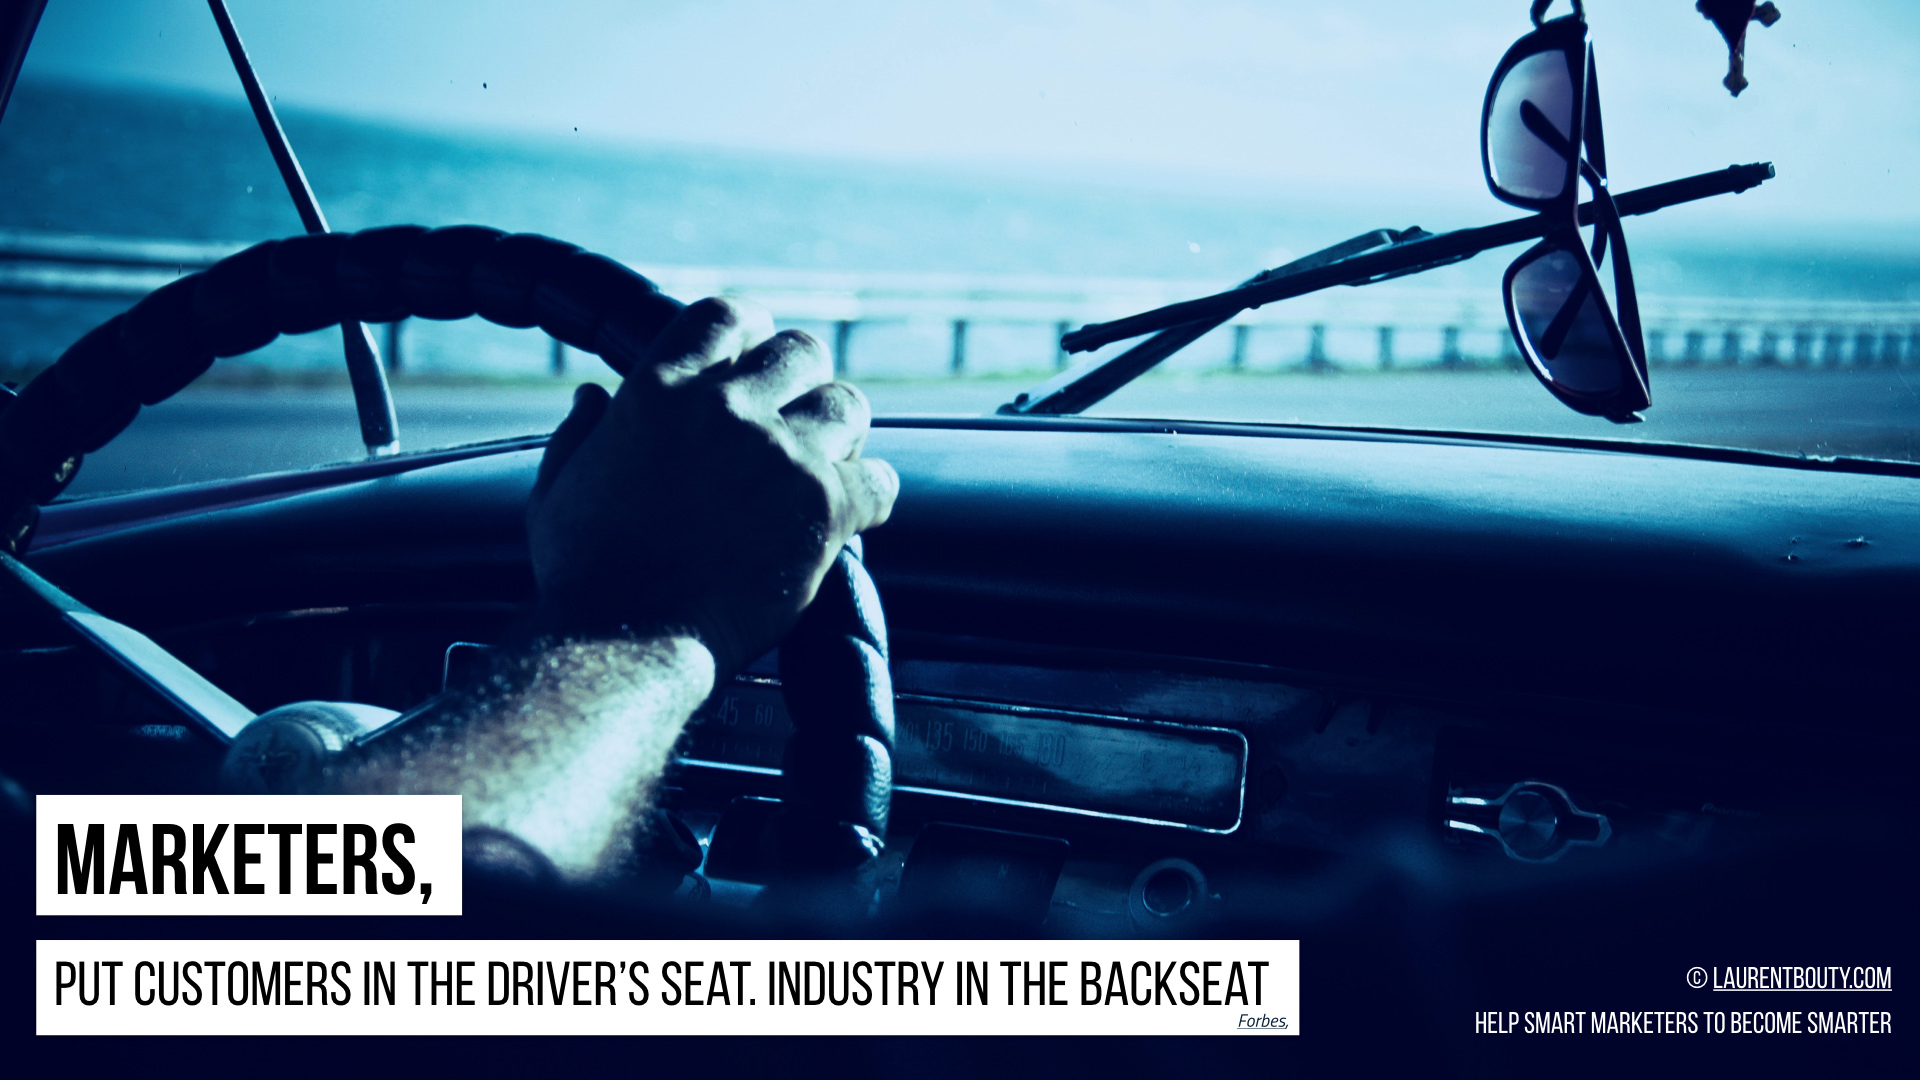 Marketers, Put Customers in the Driver's Seat